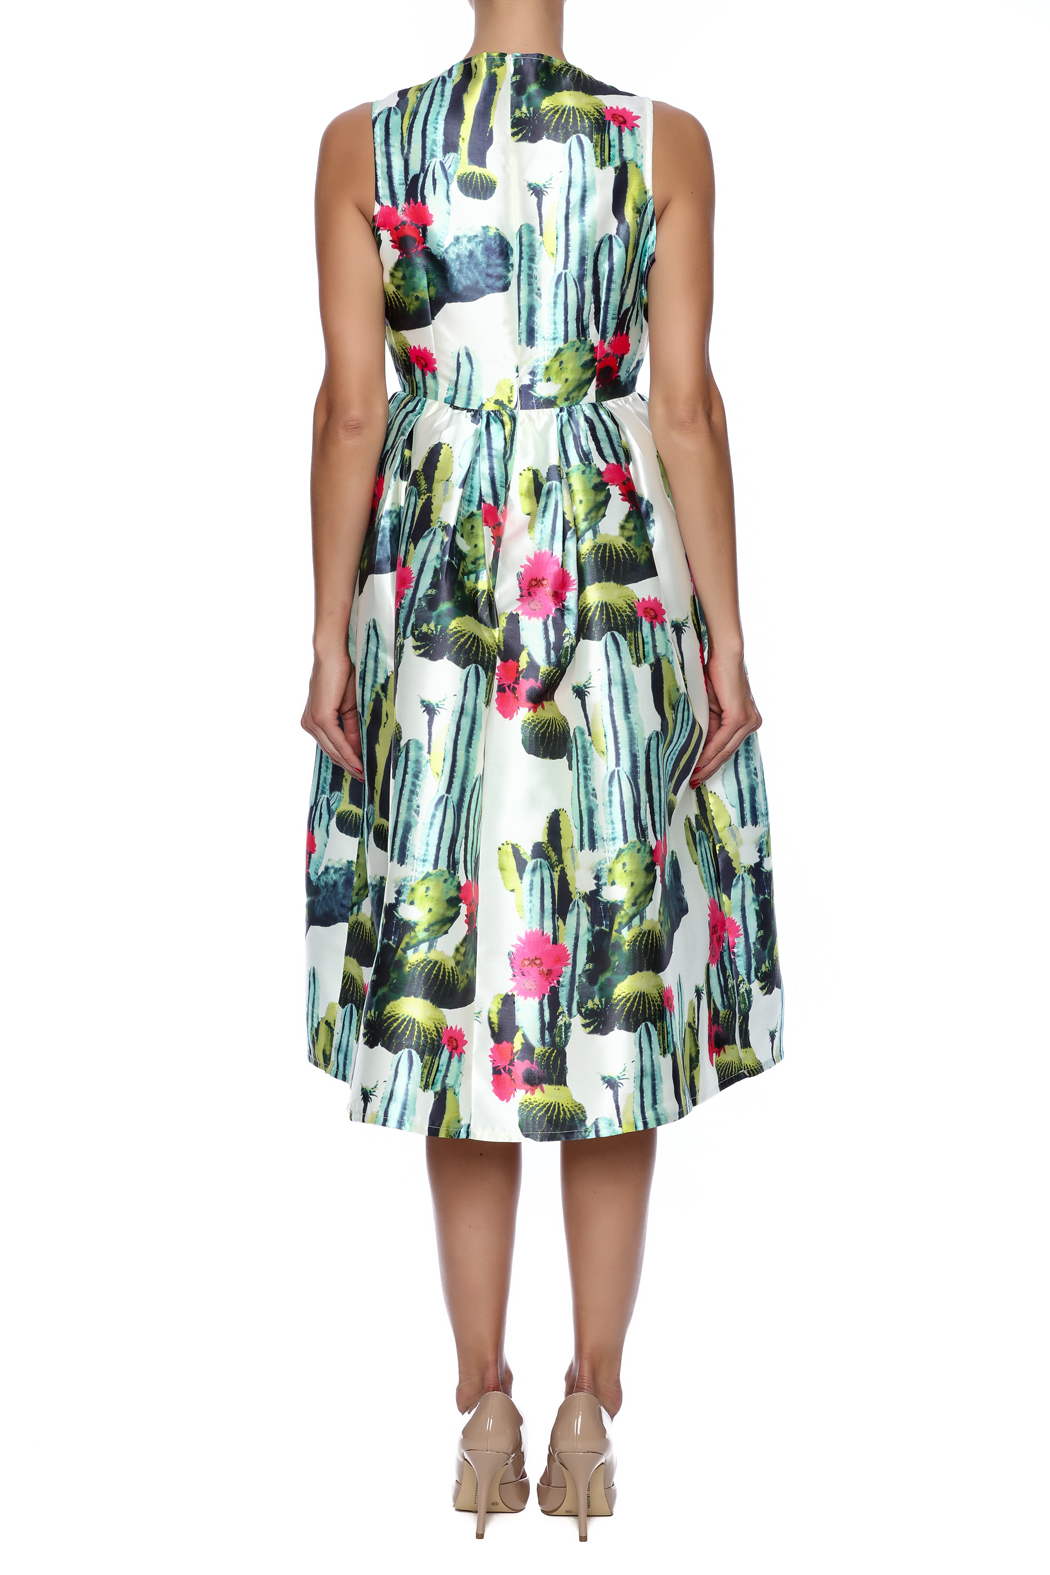 e6511d0aa59 Blaque Label Cactus Print Dress from Texas by The Hen House — Shoptiques